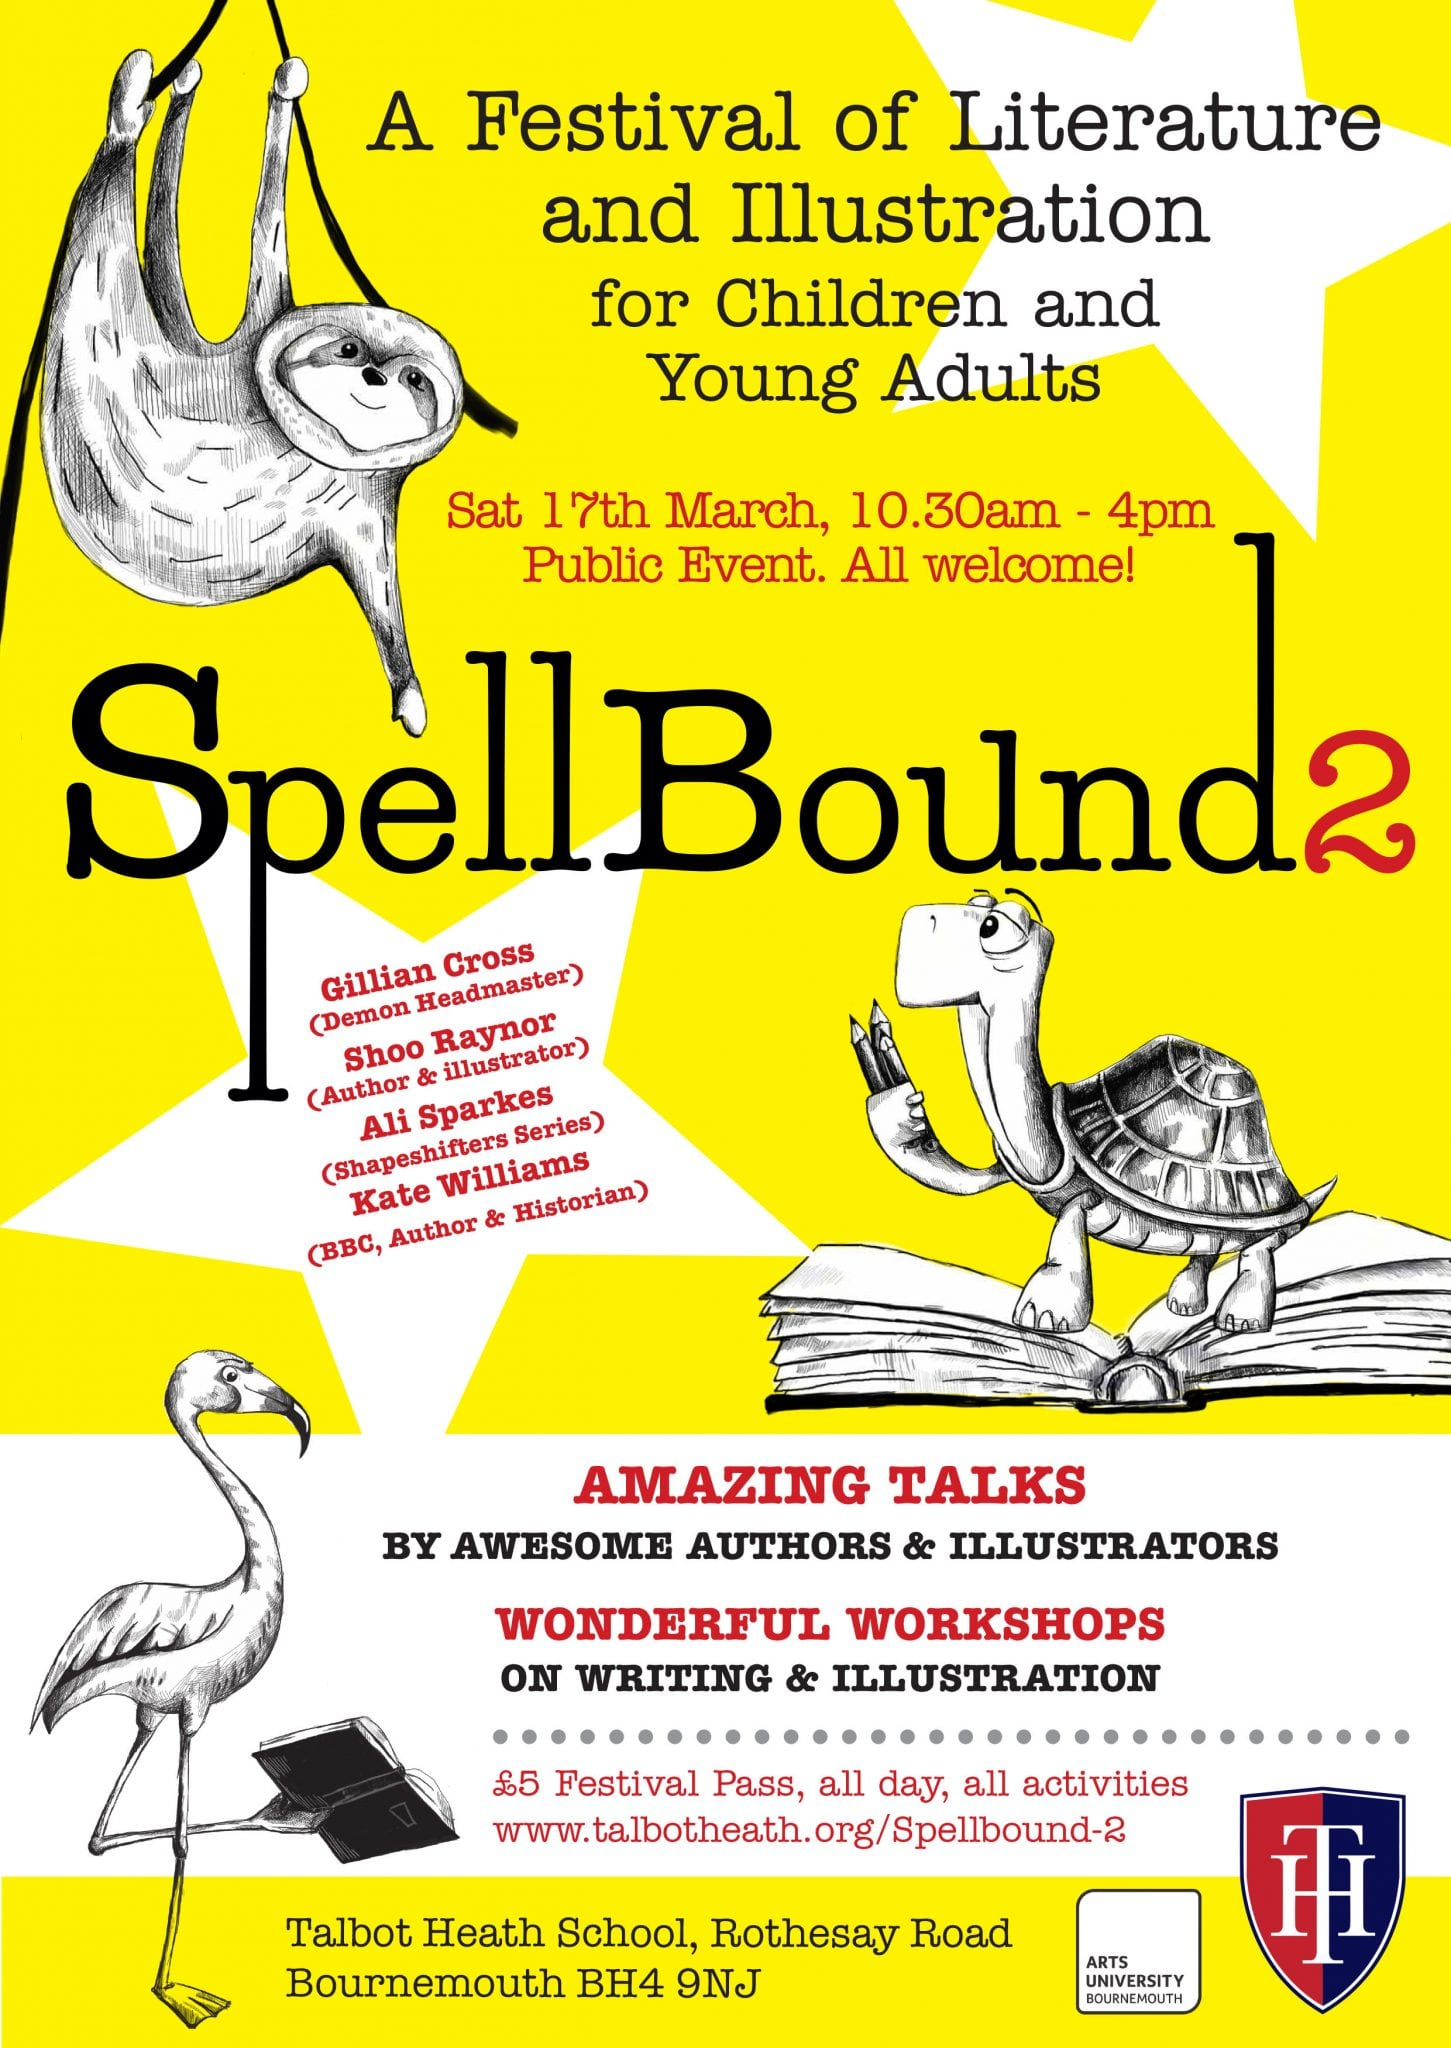 AUB Collaborate for Spellbound 2 Festival of Literature and Illustration